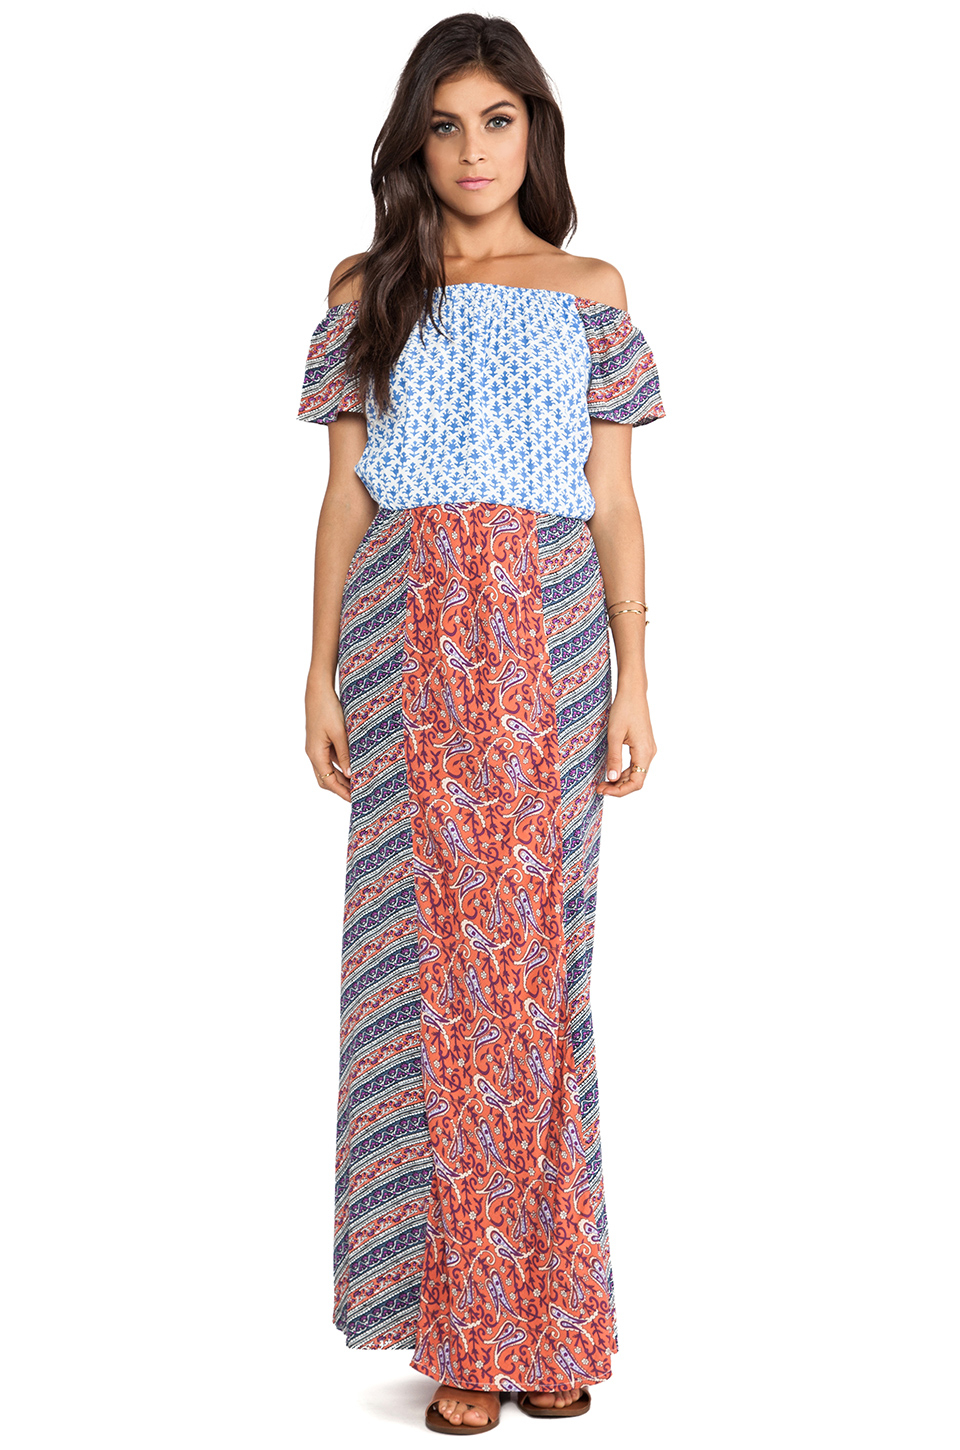 Suboo geometric print maxi dress